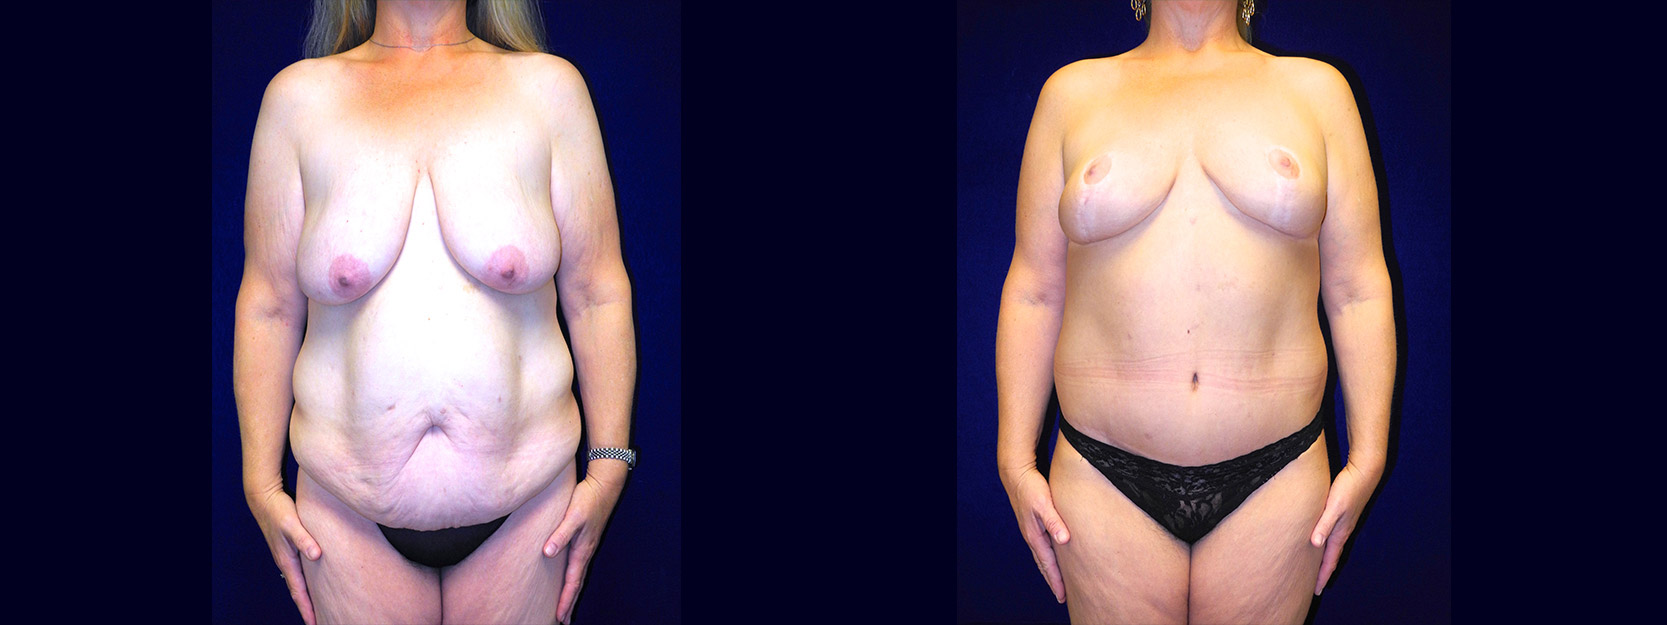 Frontal View - Body Lift After Massive Weight Loss